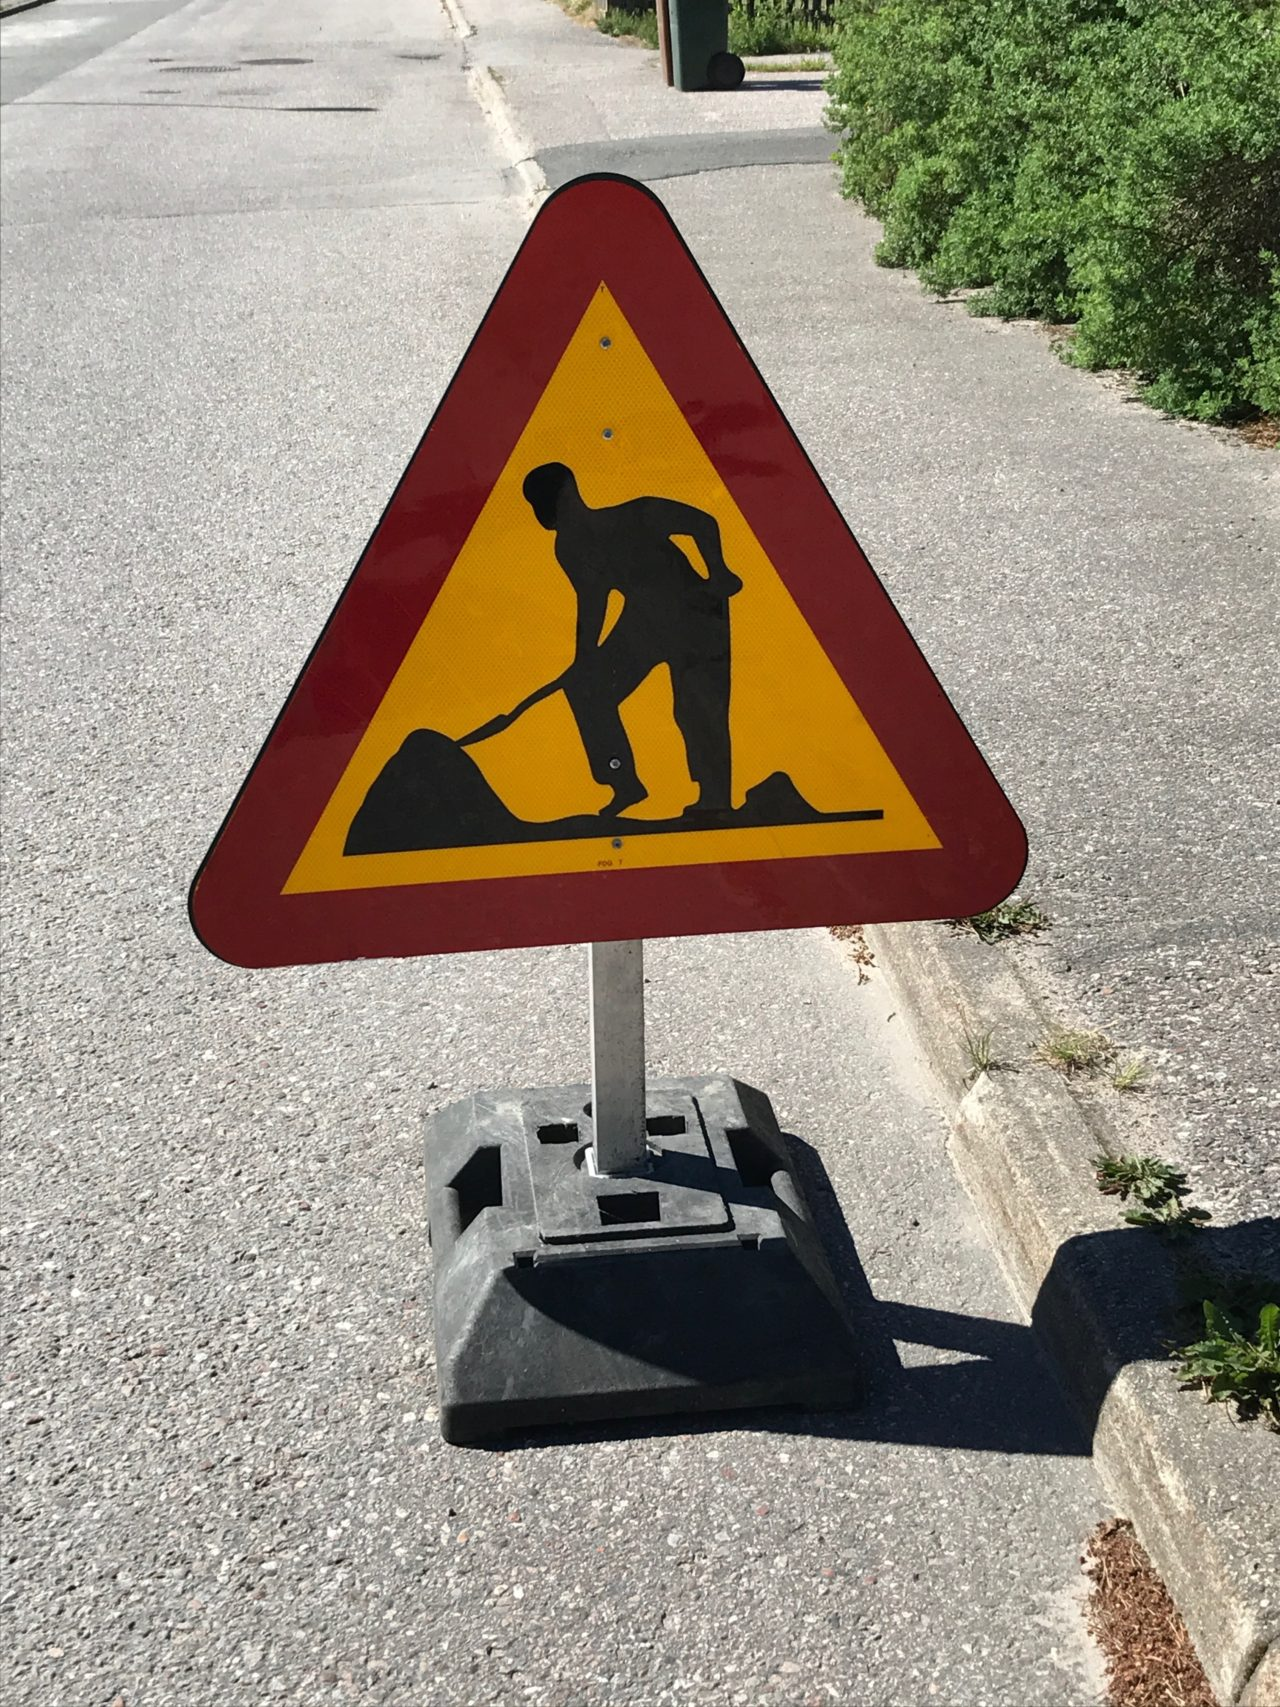 Construction Work Triangle Roadside Sign